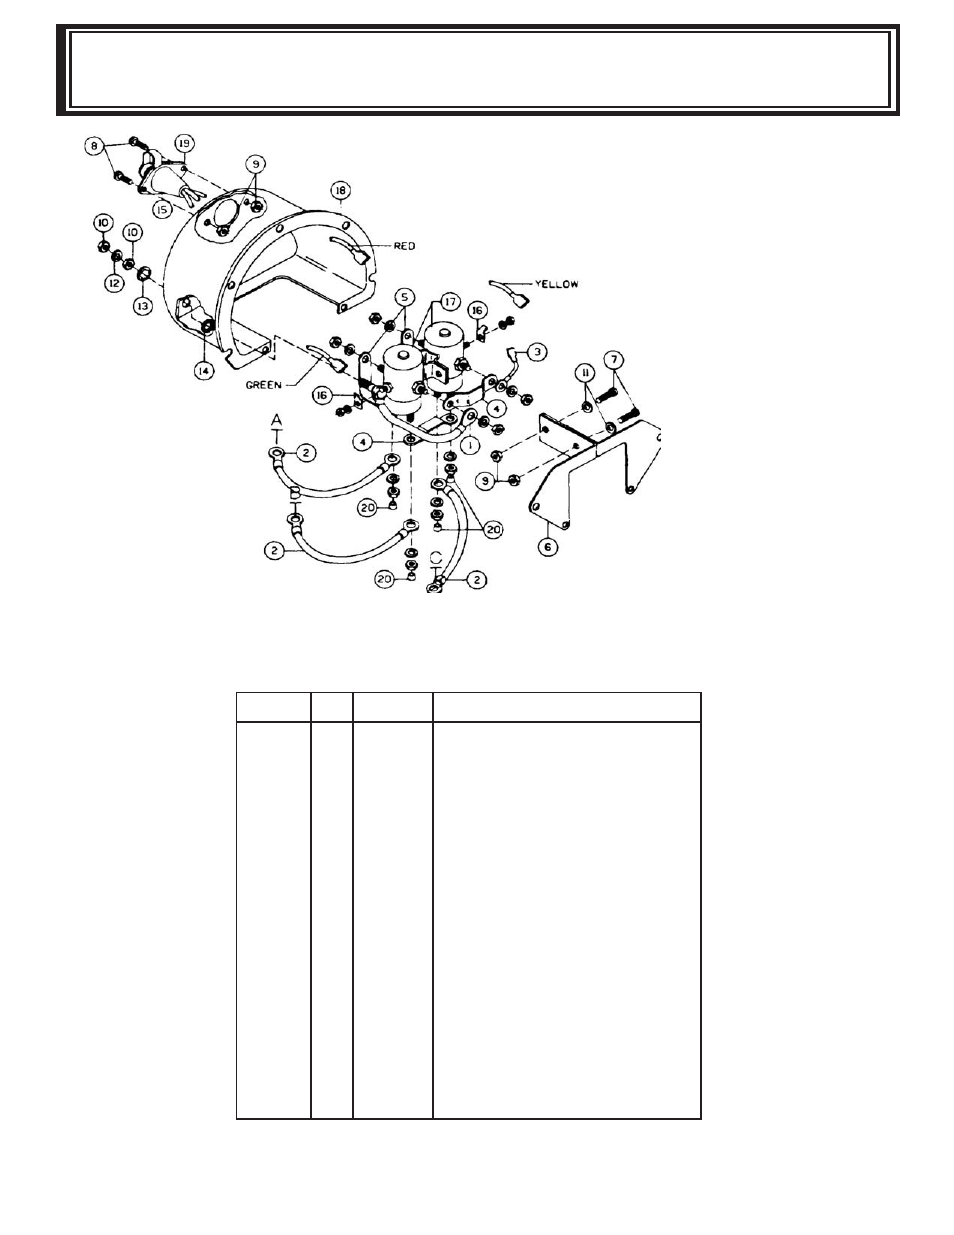 ramsey winch dc 200 series lever user manual page 23 26